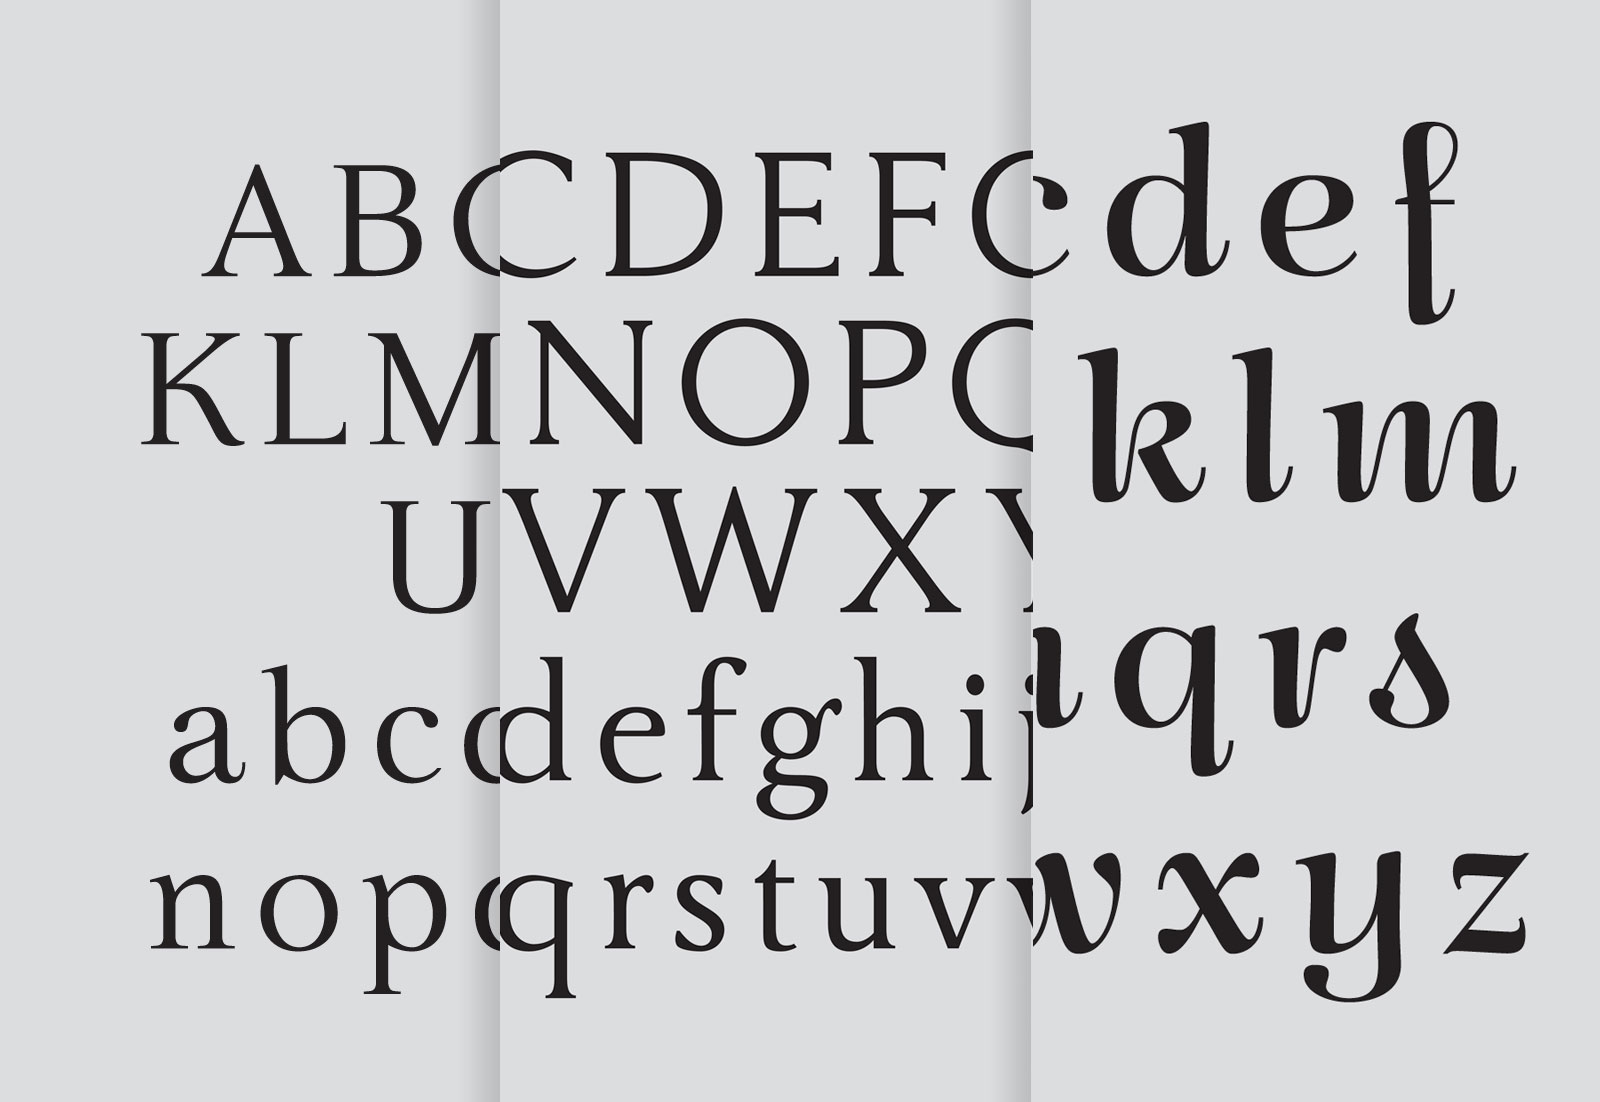 Morgane Rebulard's The Polyglot, Le Polyglotte and Mabel typefaces